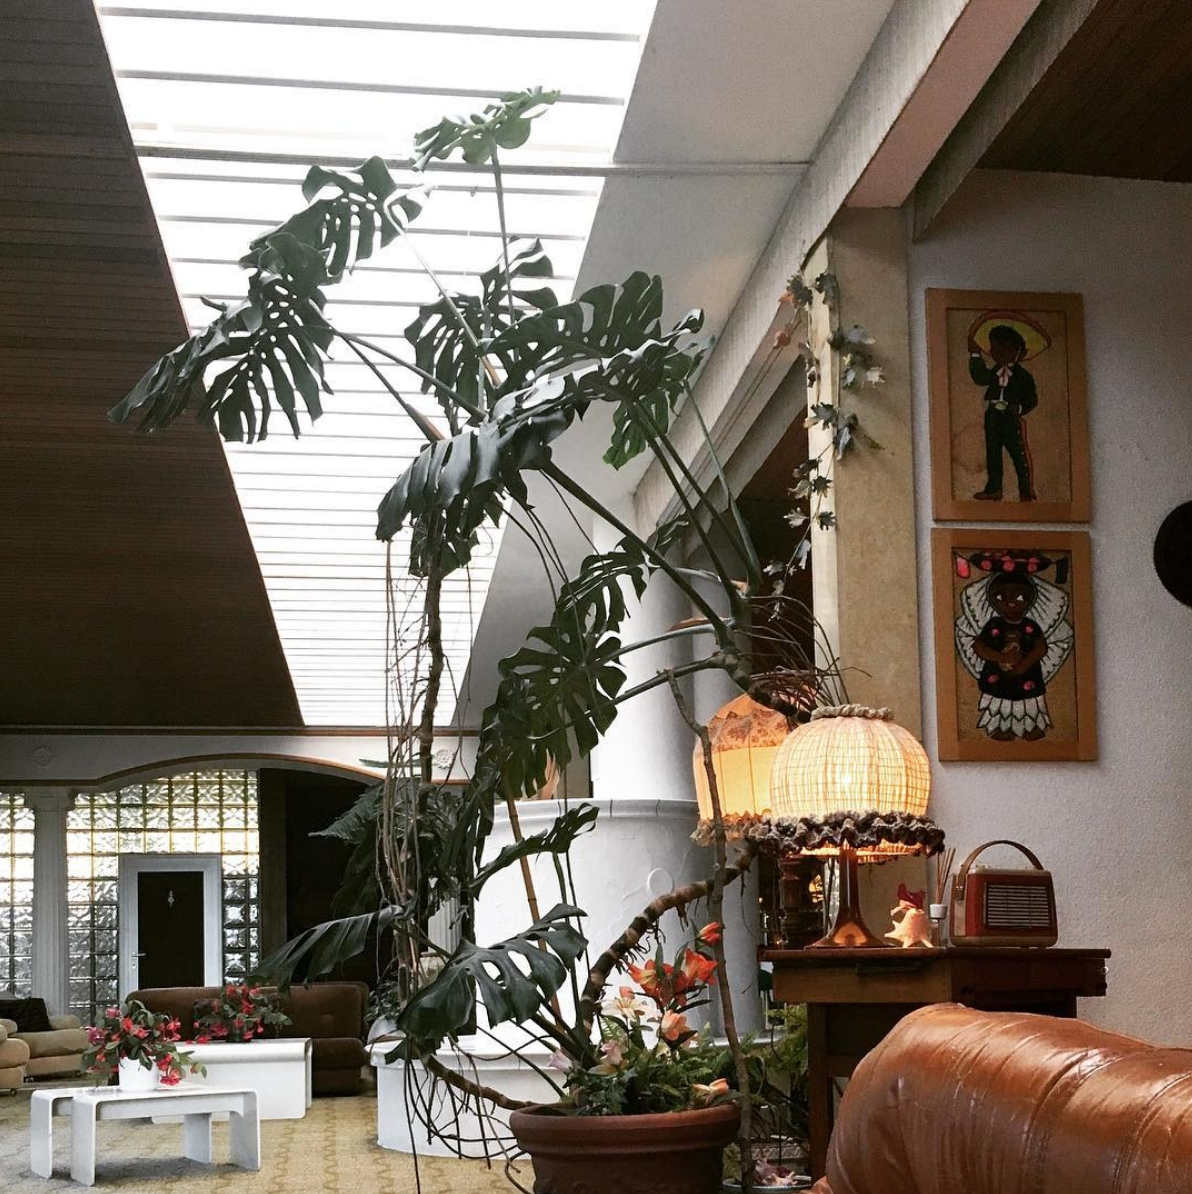 Interior love im parkhotel1970 🌿 #hotel #interior #interiordesign #monstera #plants #livingroom #design